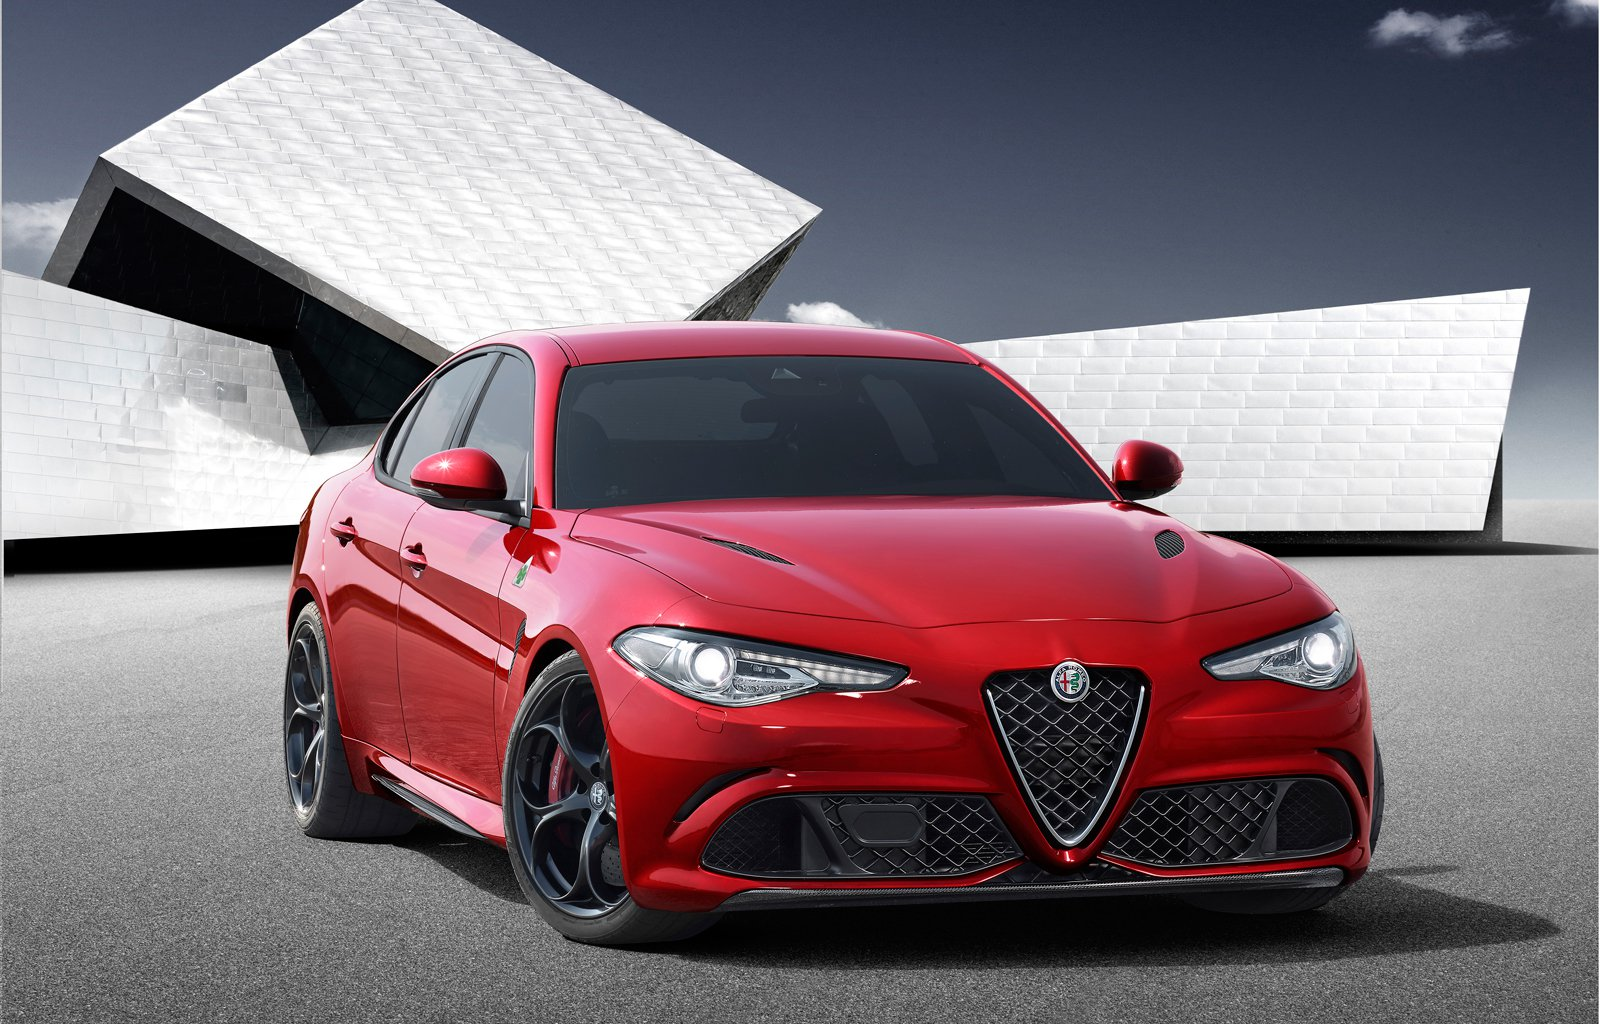 2017 Alfa Romeo Giulia Berlina photo - 1